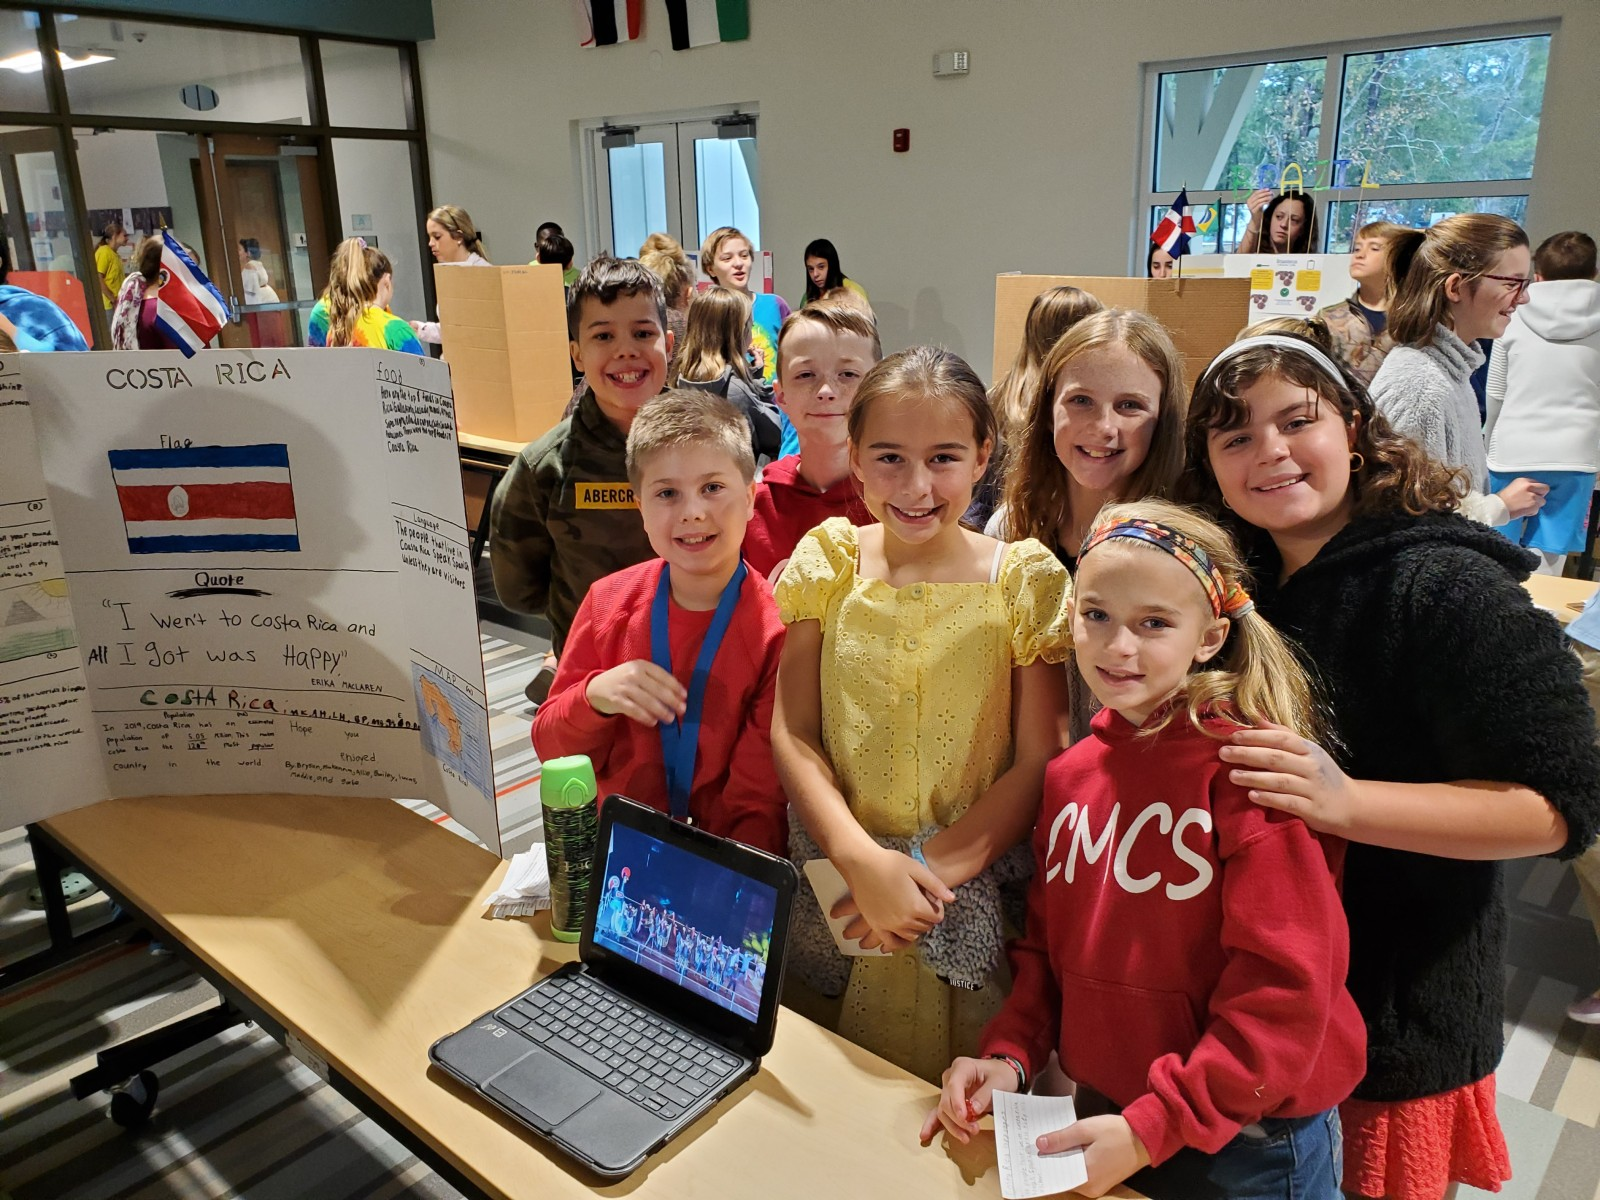 Students gather around a laptop computer and poster board at a county competition